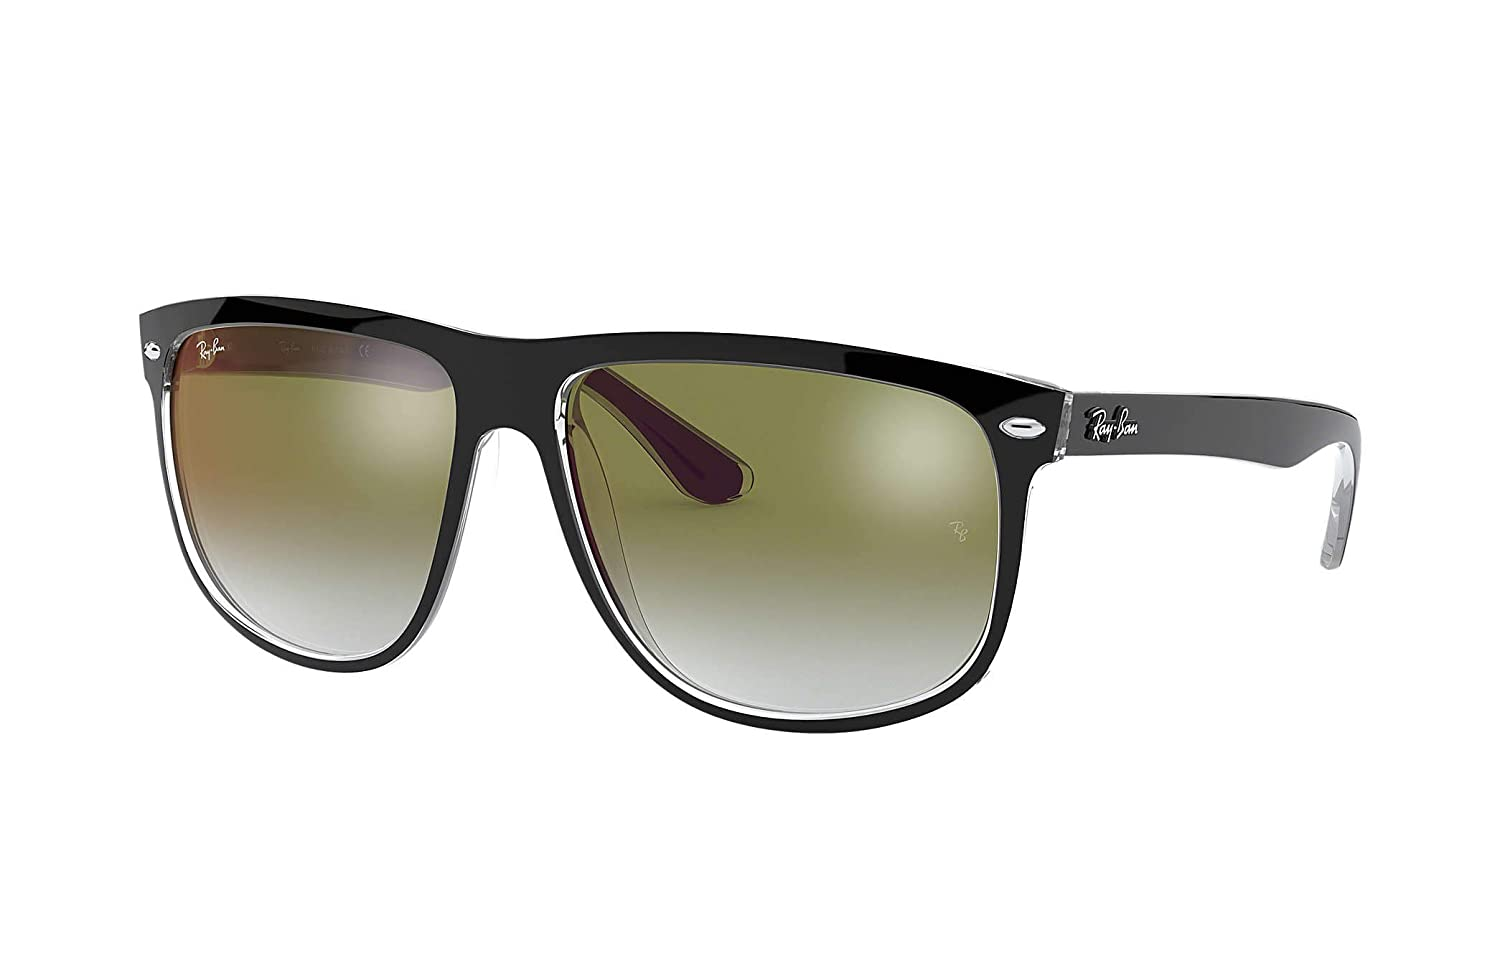 6d7f9d968477 Amazon.com: Ray-Ban RB4147 Boyfriend Square Sunglasses, Black On  Transparent/Green Red Gradient Mirror, 60 mm: Clothing